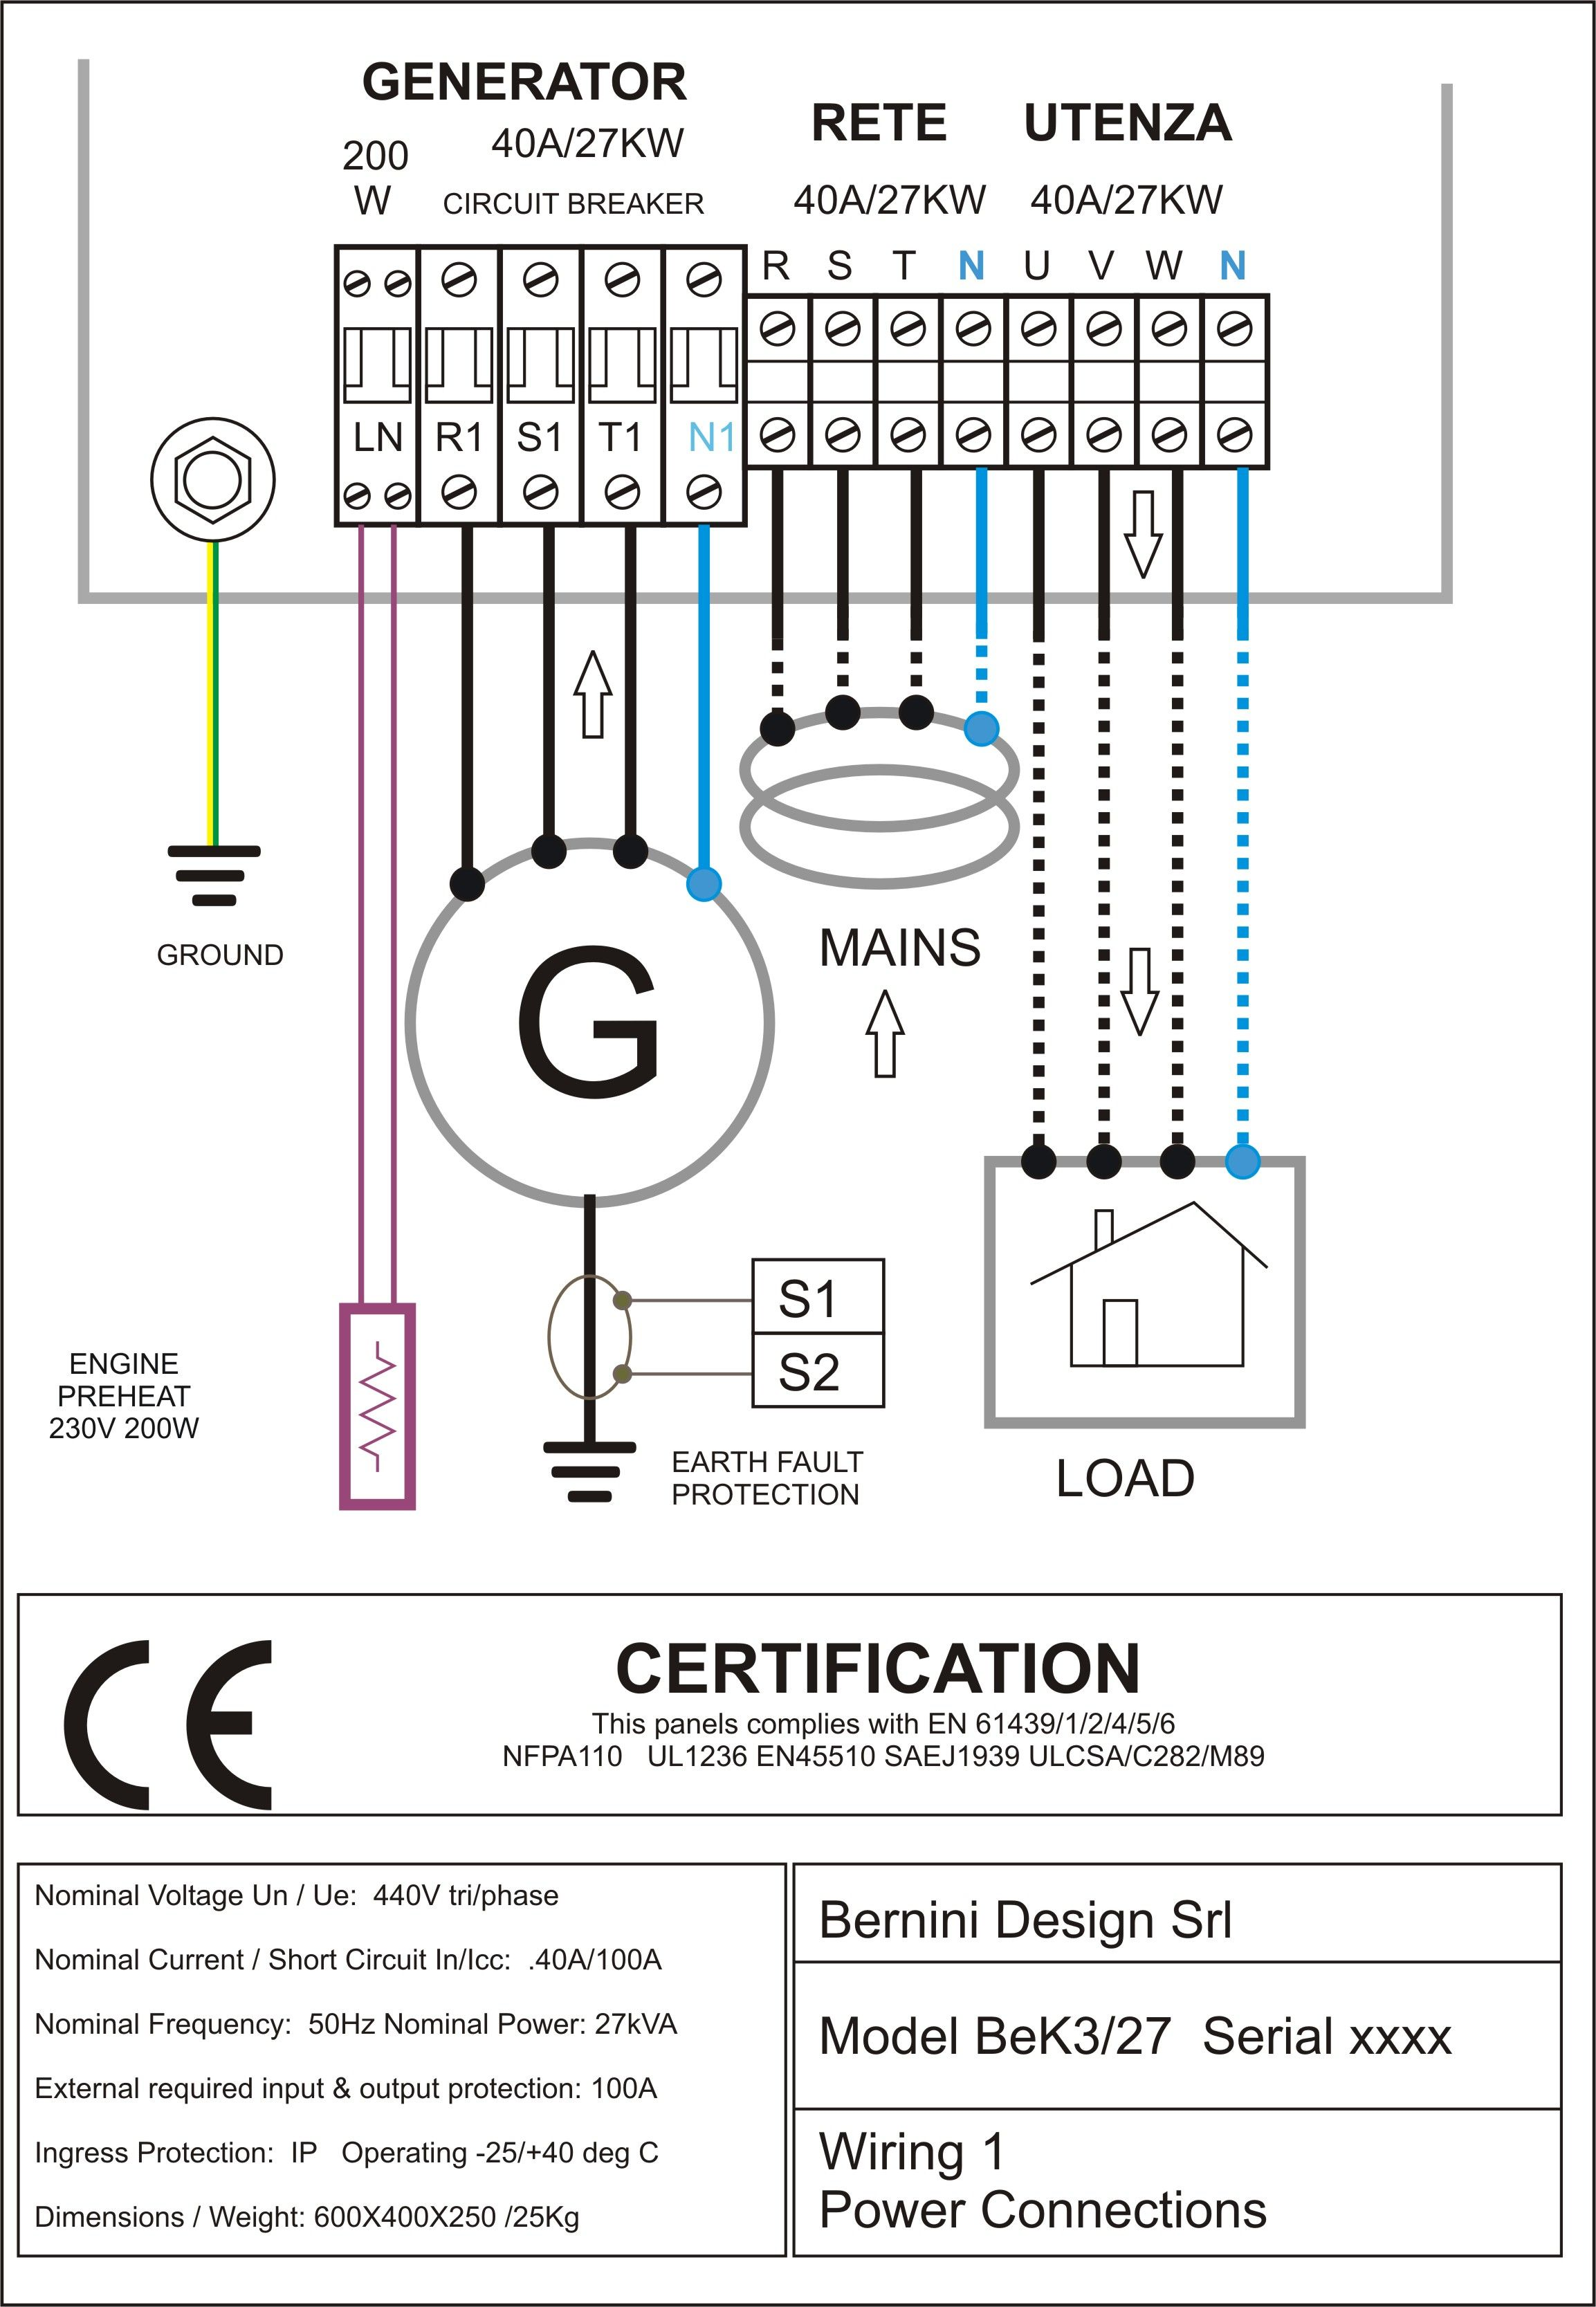 e789bca93f9142d48250ddc66668a81d diesel generator control panel wiring diagram ac connections gr fire pump control panel wiring diagram pdf at soozxer.org